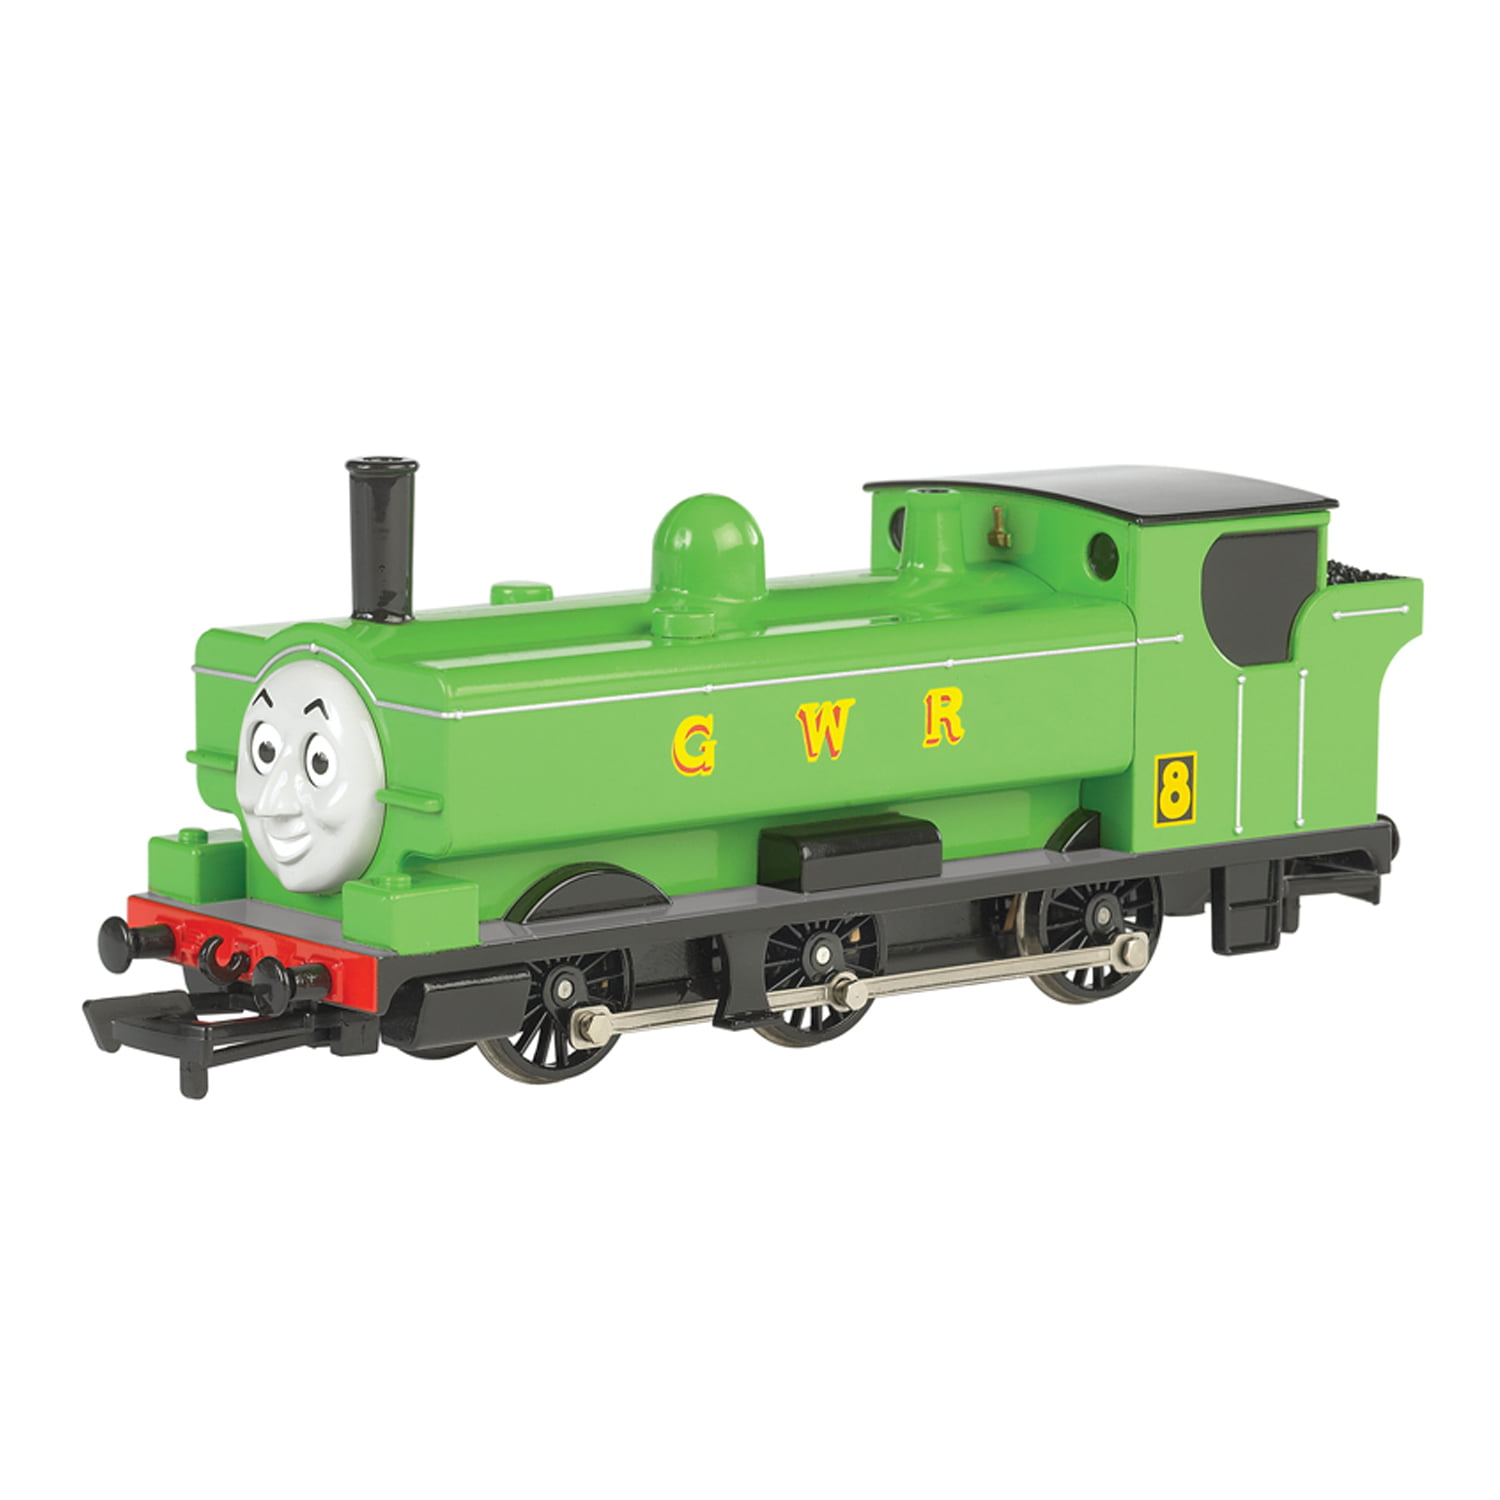 Bachmann Trains Thomas and Friends Duck Locomotive with Moving Eyes, HO Scale Train by Bachmann Trains